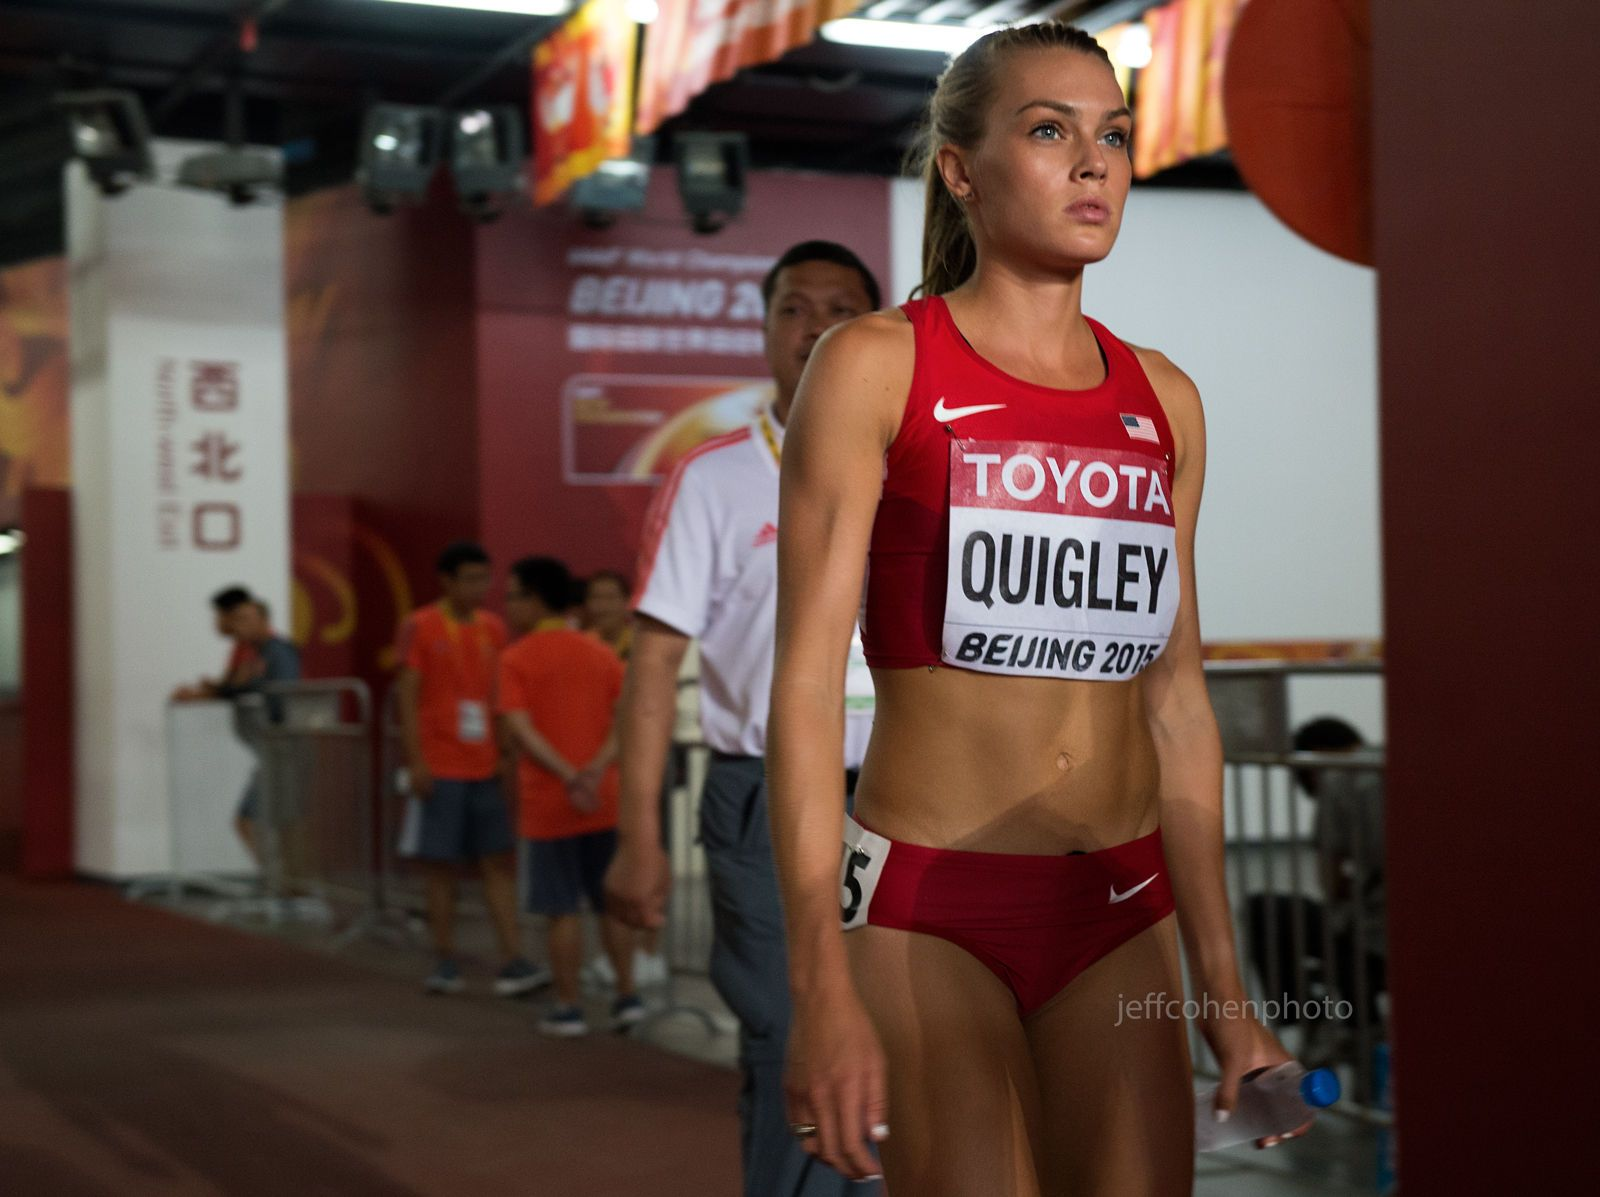 358_1beijing2015_night__5_coleen_quigley_steeple_jeff_cohen_photo_21802_web.jpg